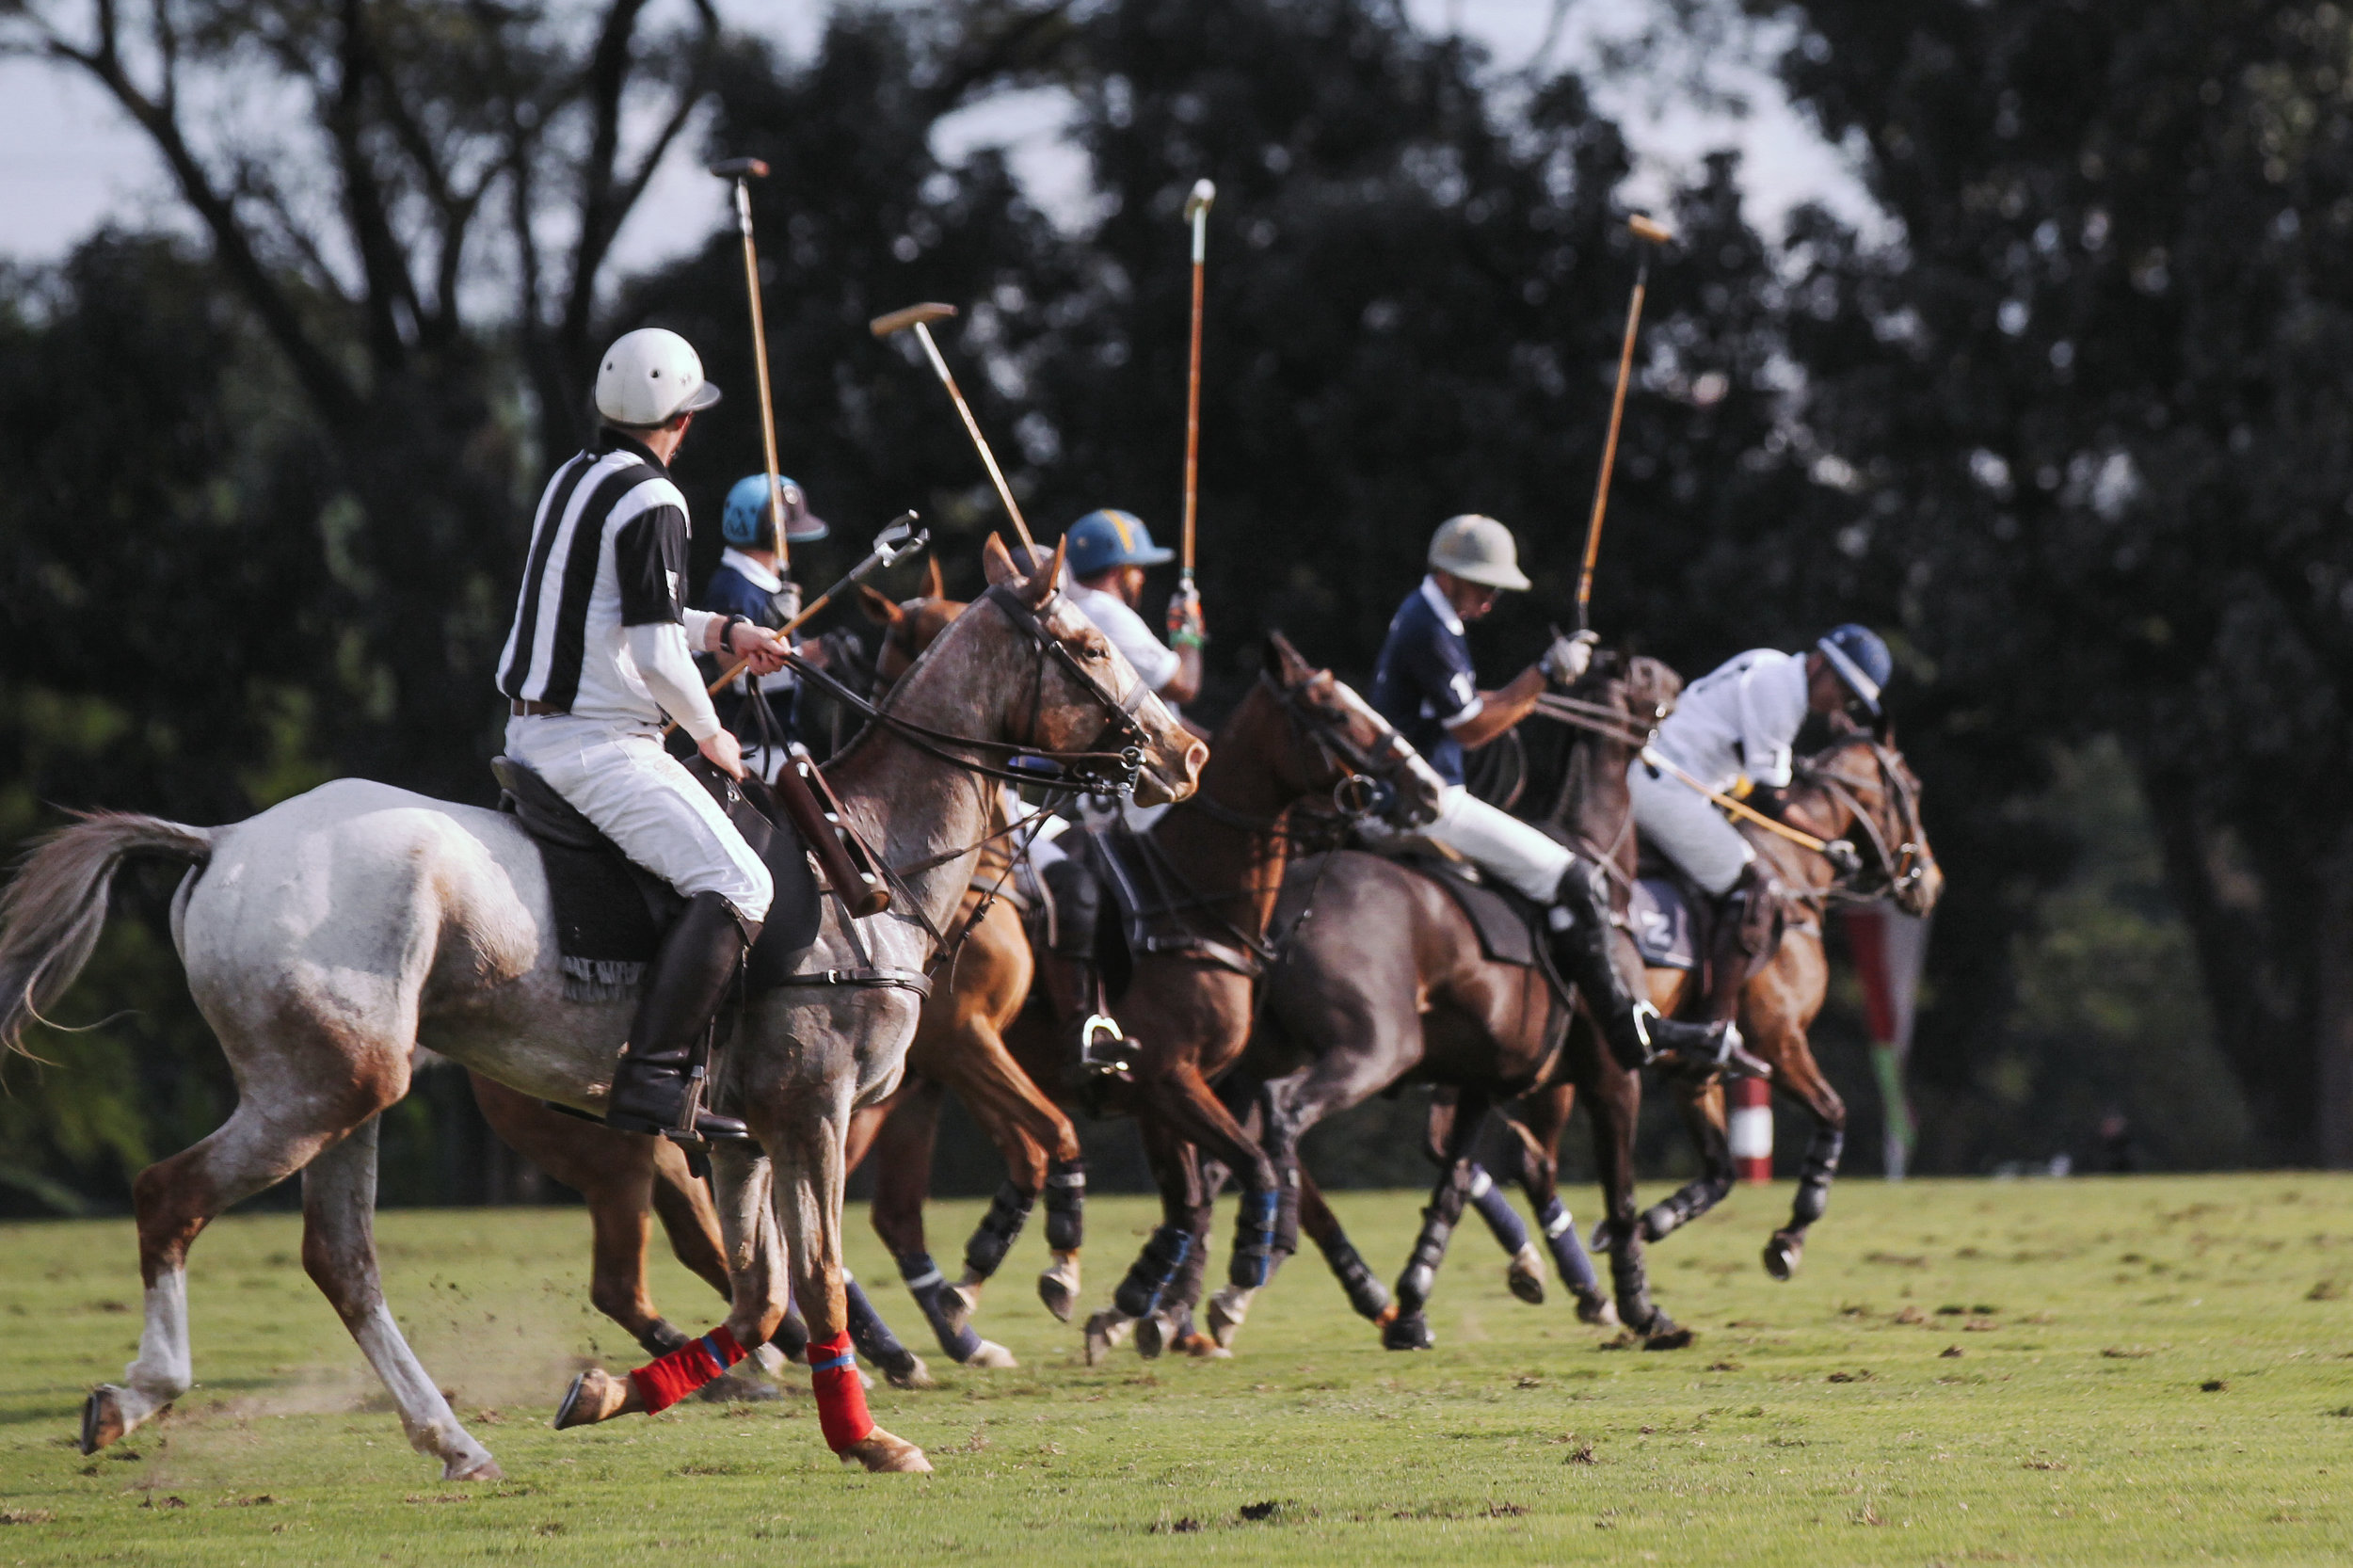 FILA Polo Cup 2017_High Goal-31.jpg